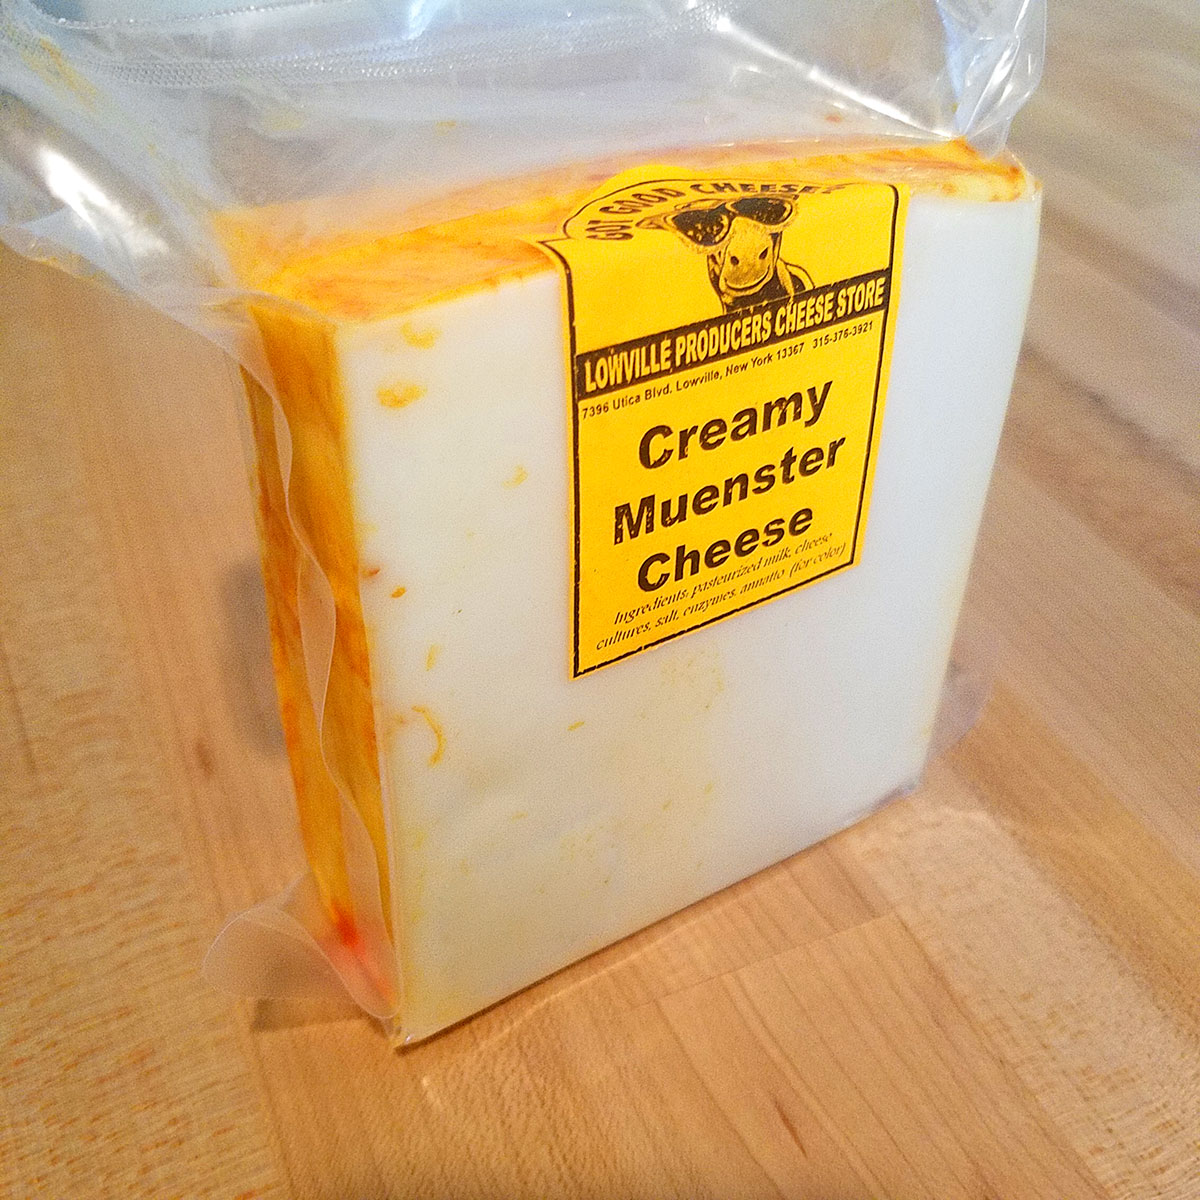 Creamy Muenster Cheese – Lowville Producers Dairy